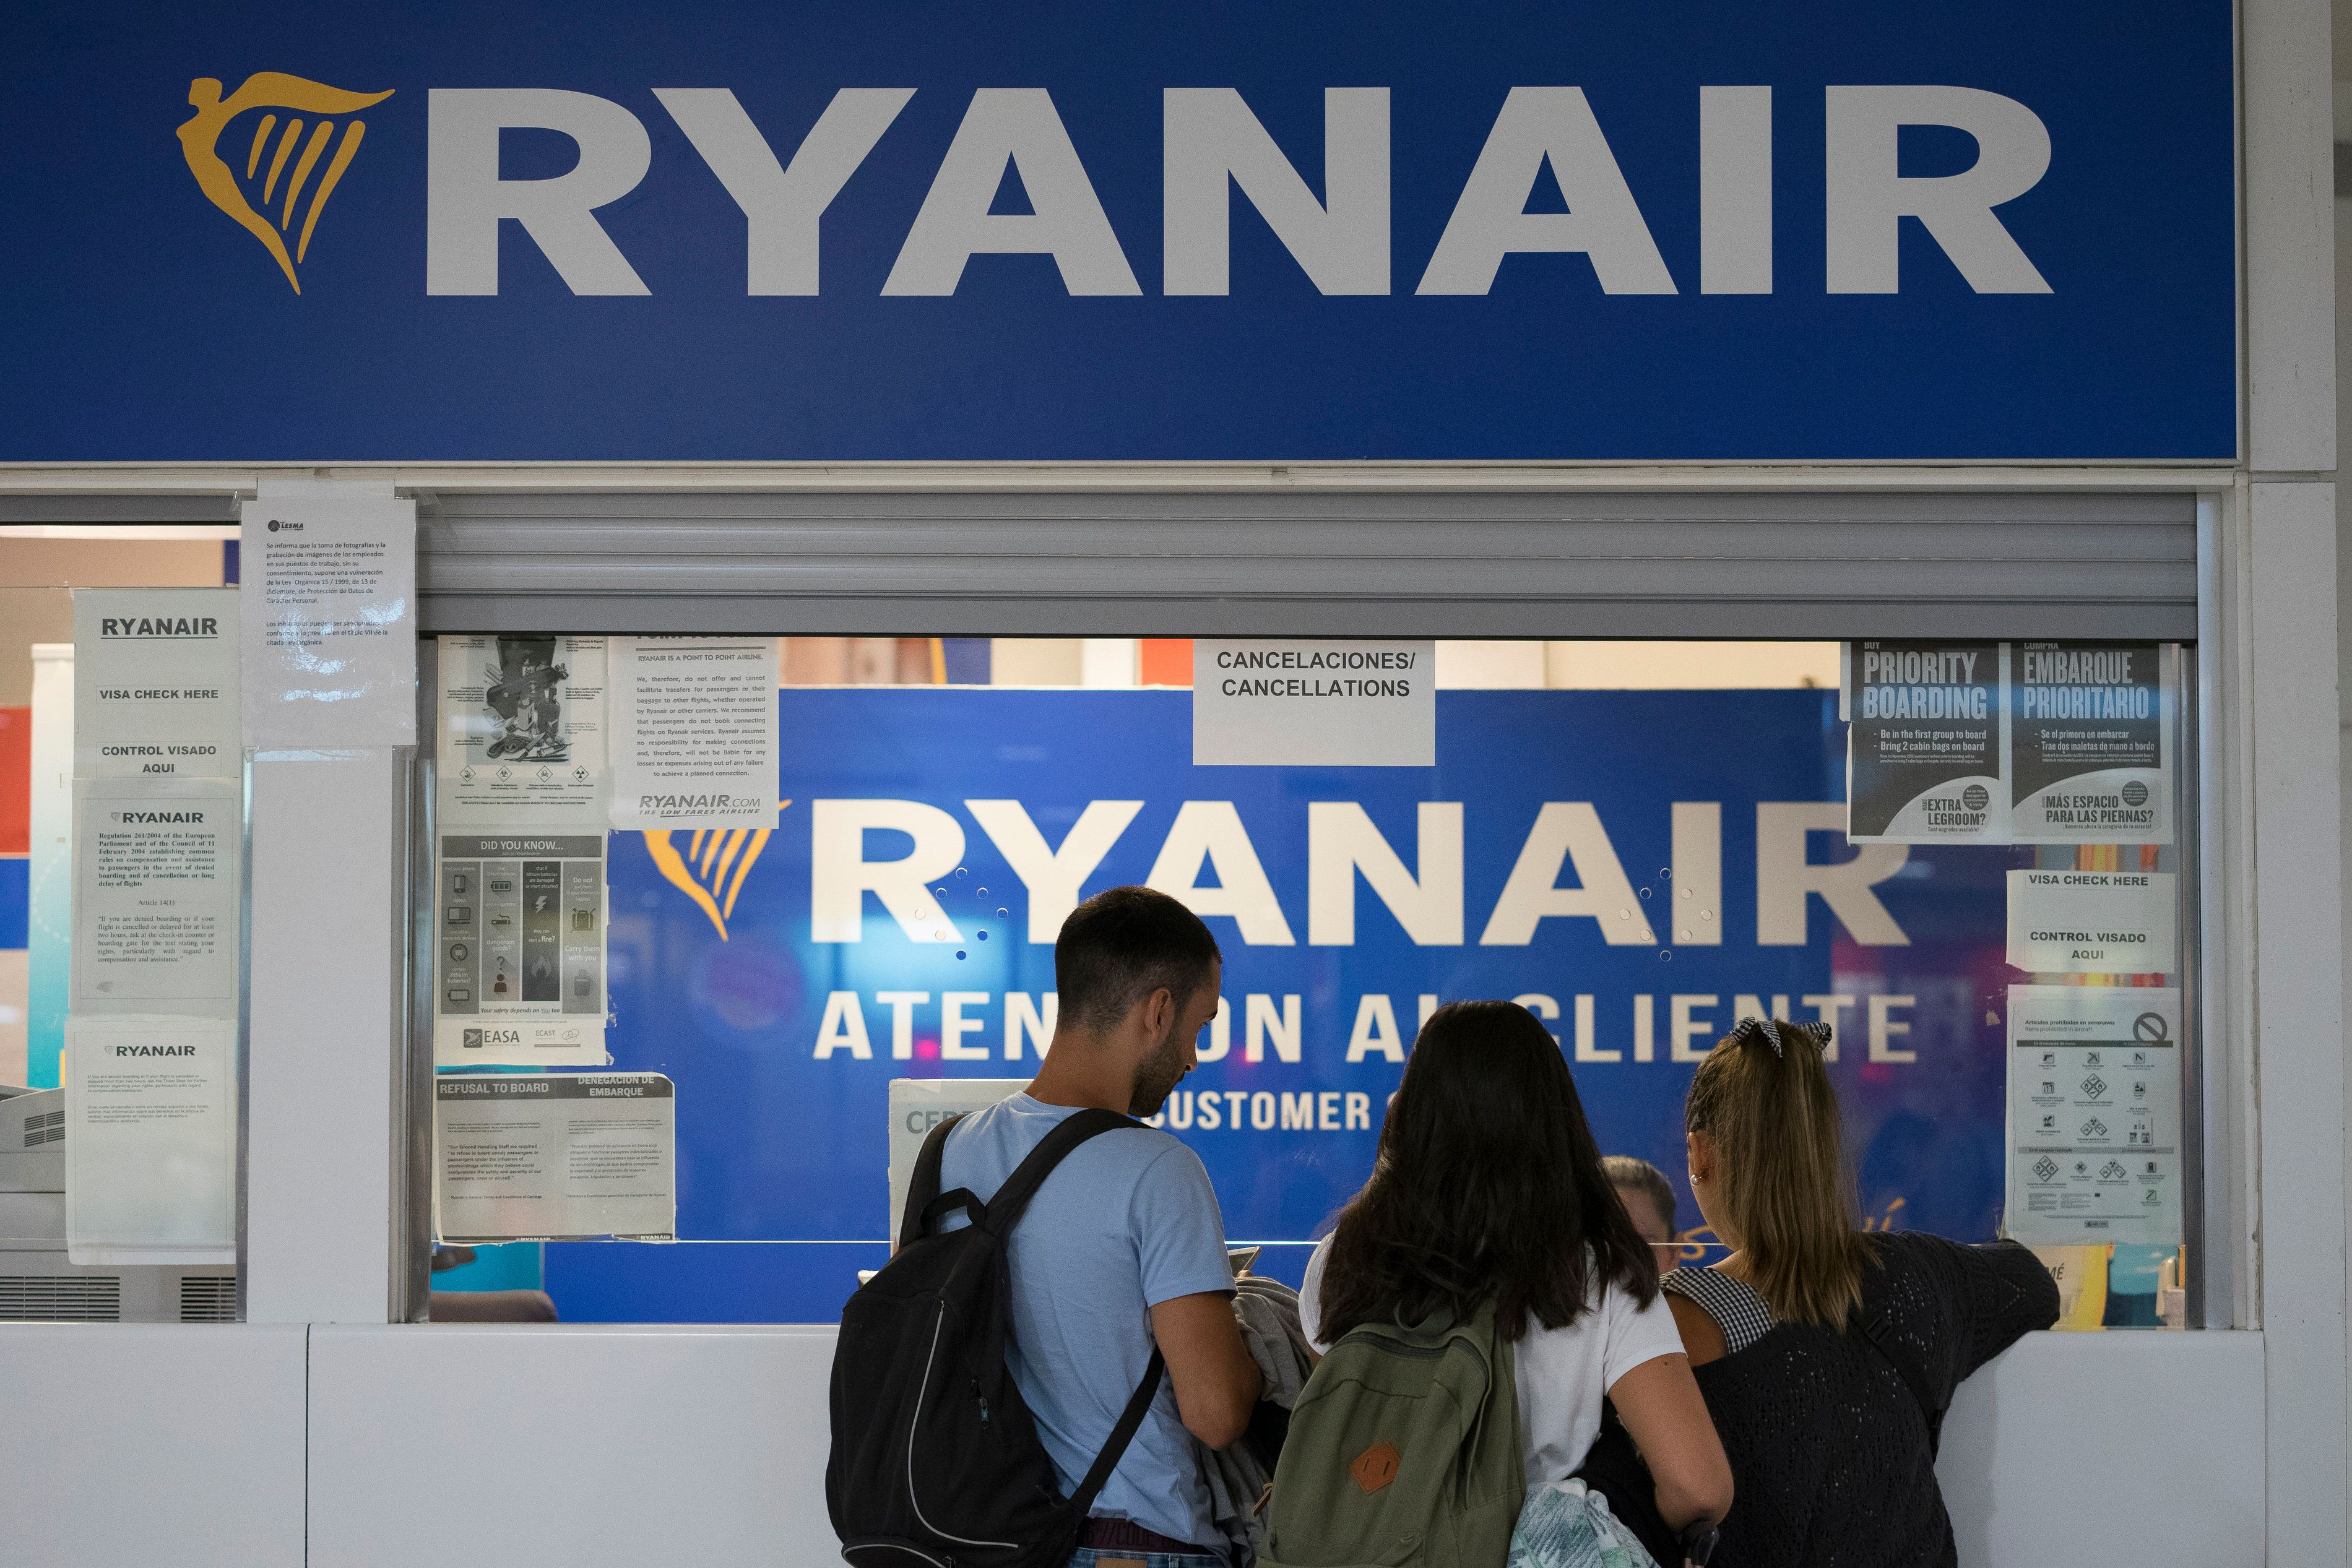 Even After A Profit Warning, Ryanair Is Still Set To Make Almost £1 Billion This